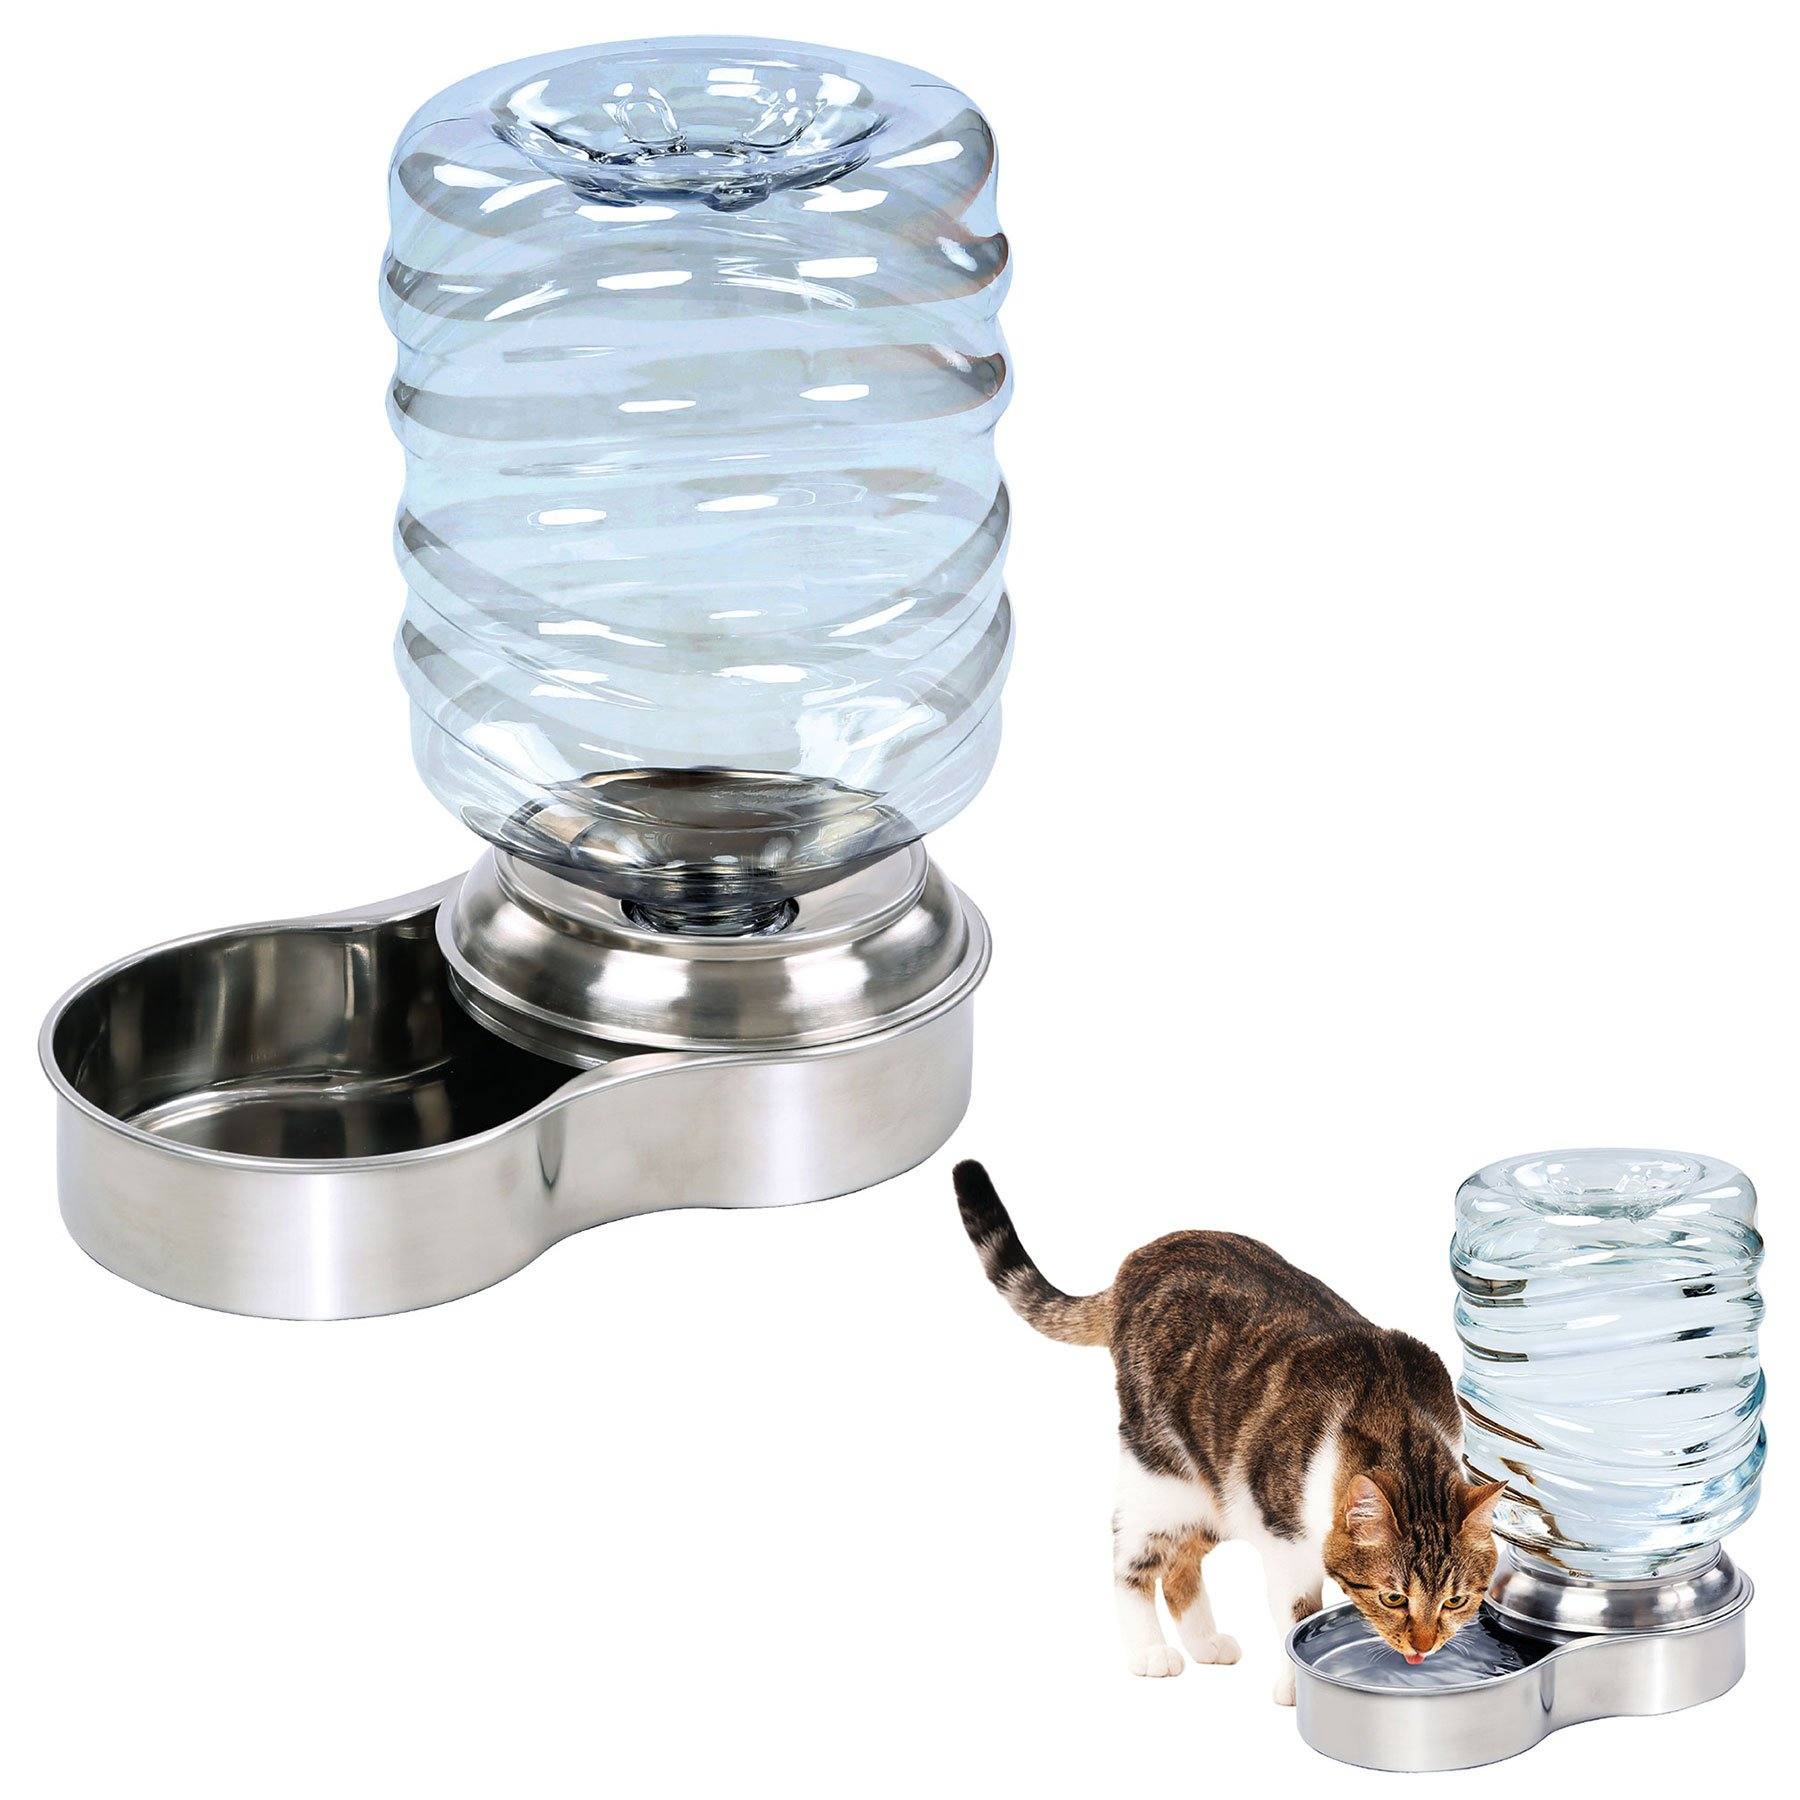 Stainless Steel Dog Pet Water Bowl with 3 Liter Replenishment Tank Gravity Fed